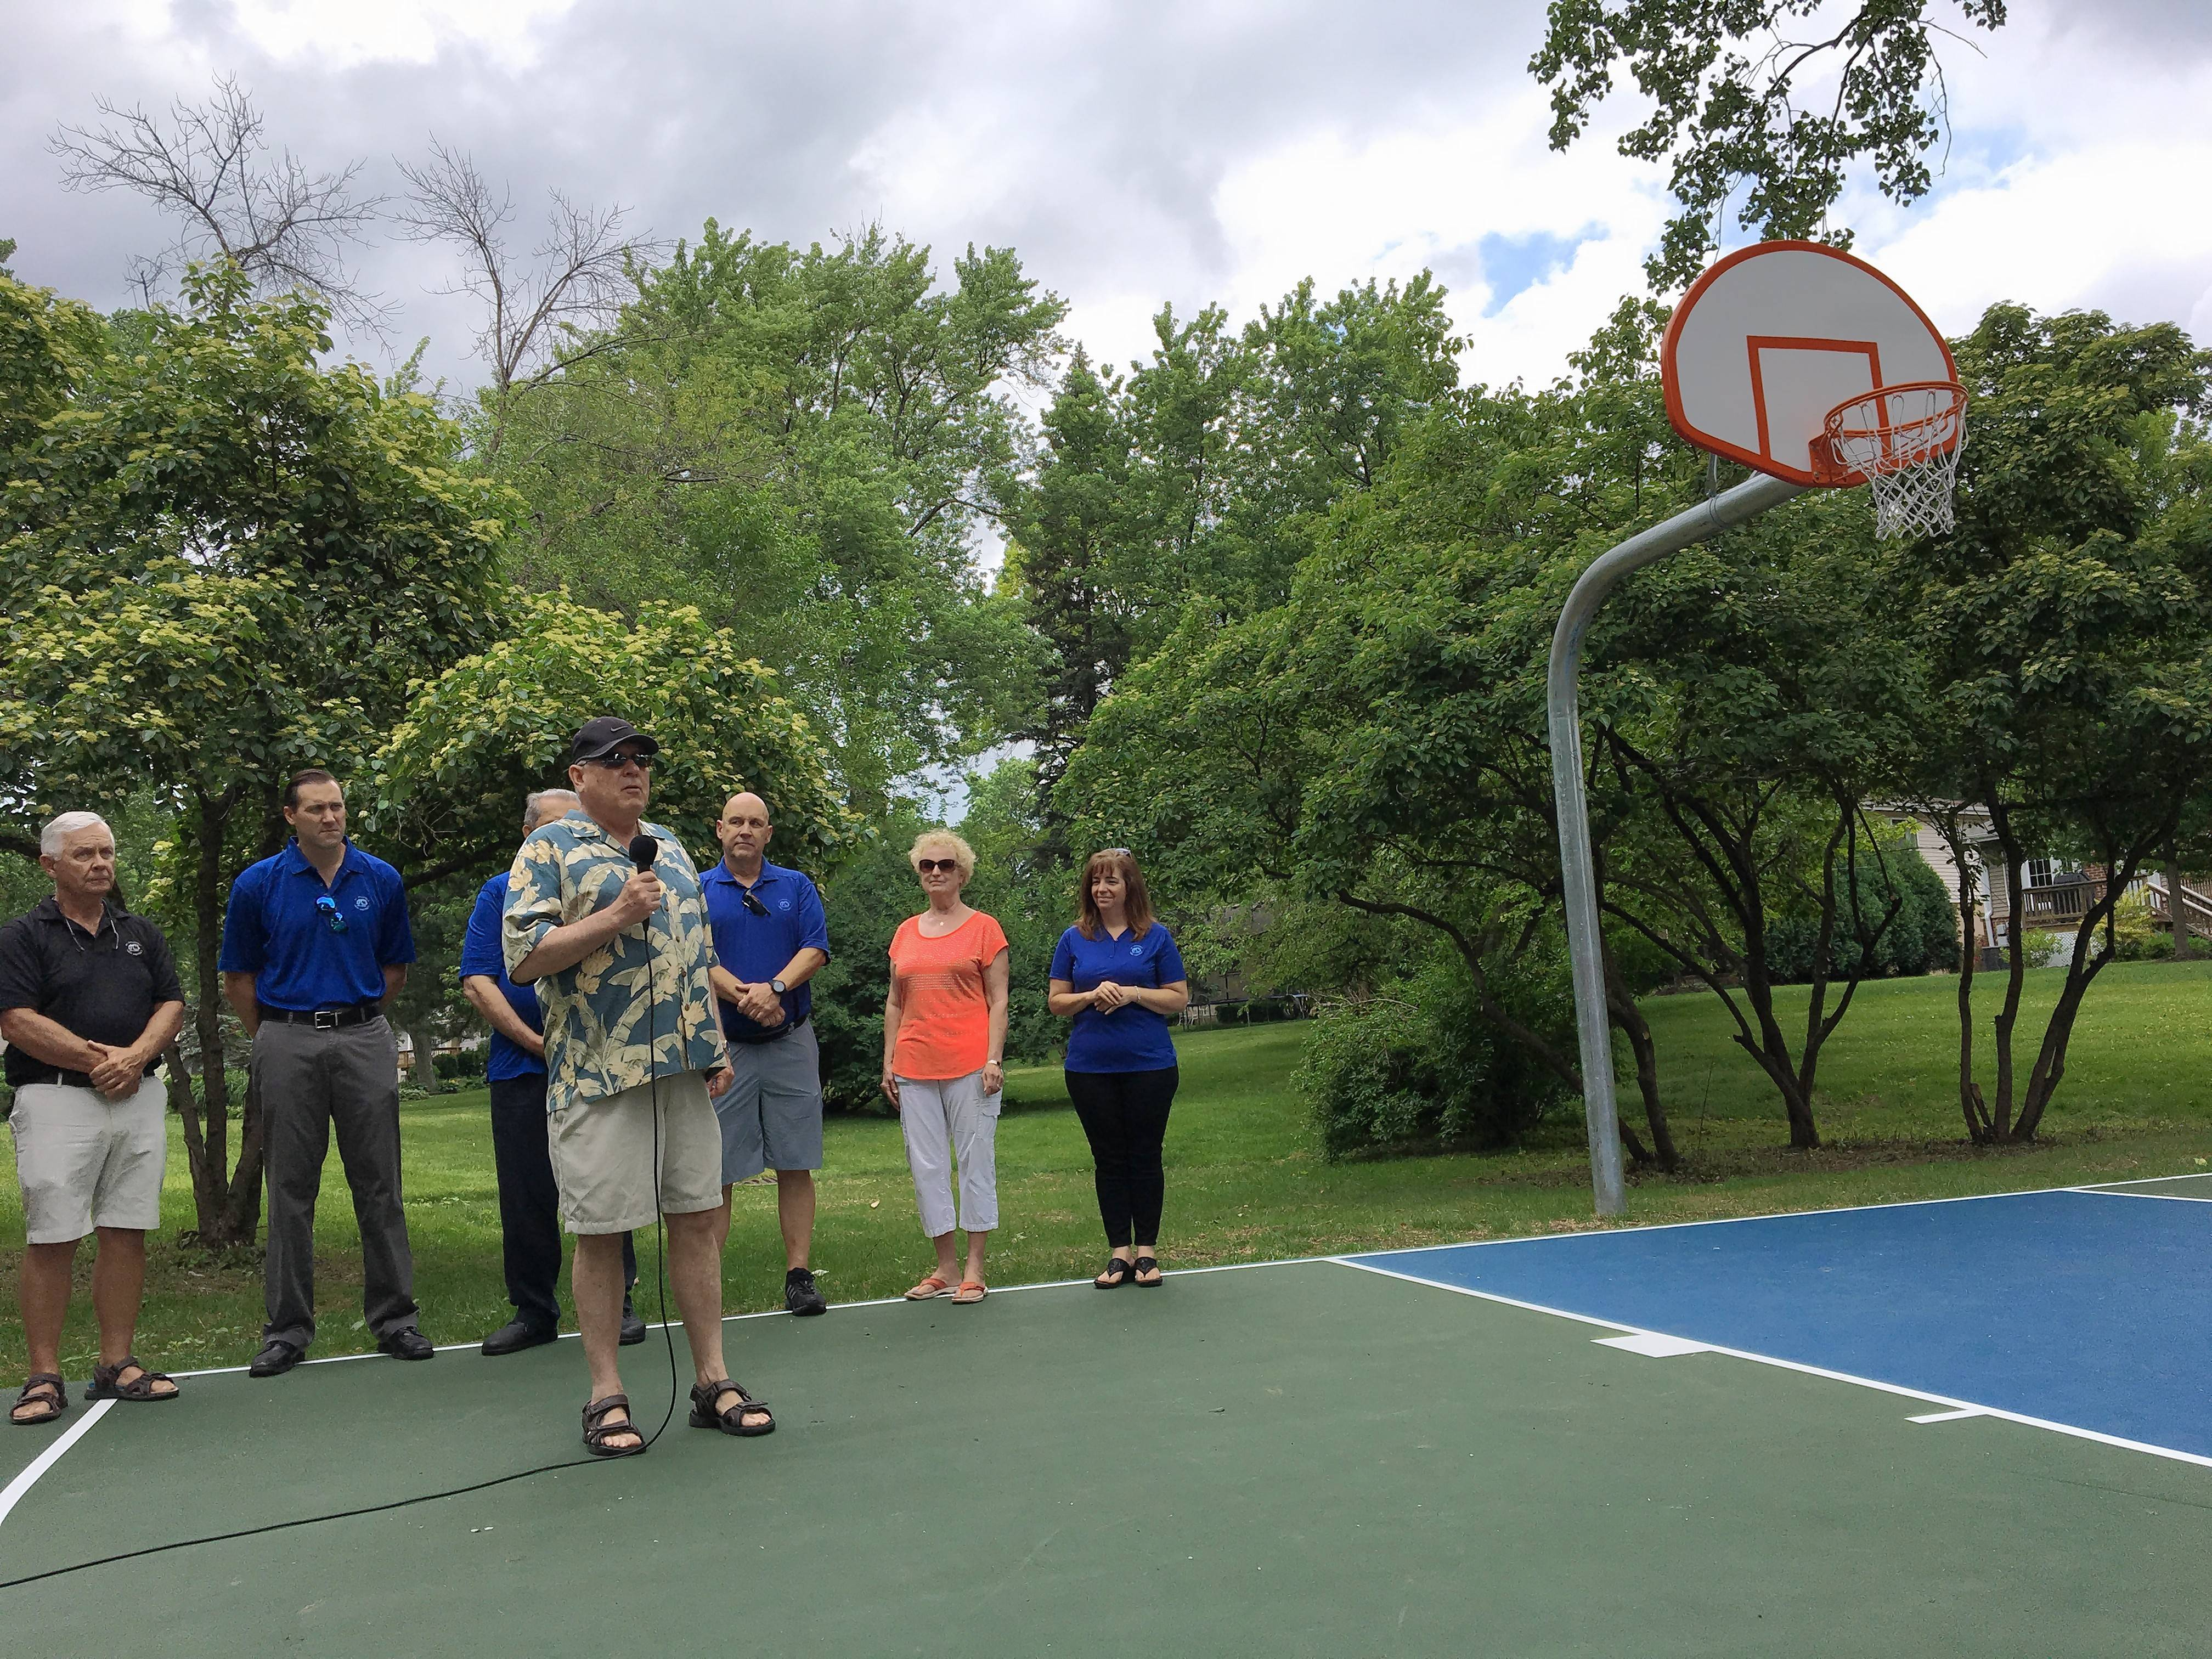 Bruce Gillilan of Mount Prospect speaks during a dedication Saturday of a basketball court in We-Go Park in memory of his daughter Lindsay, a special needs kindergarten teacher with Lake Zurich Unit District 95 who died suddenly of heart failure in 2009.